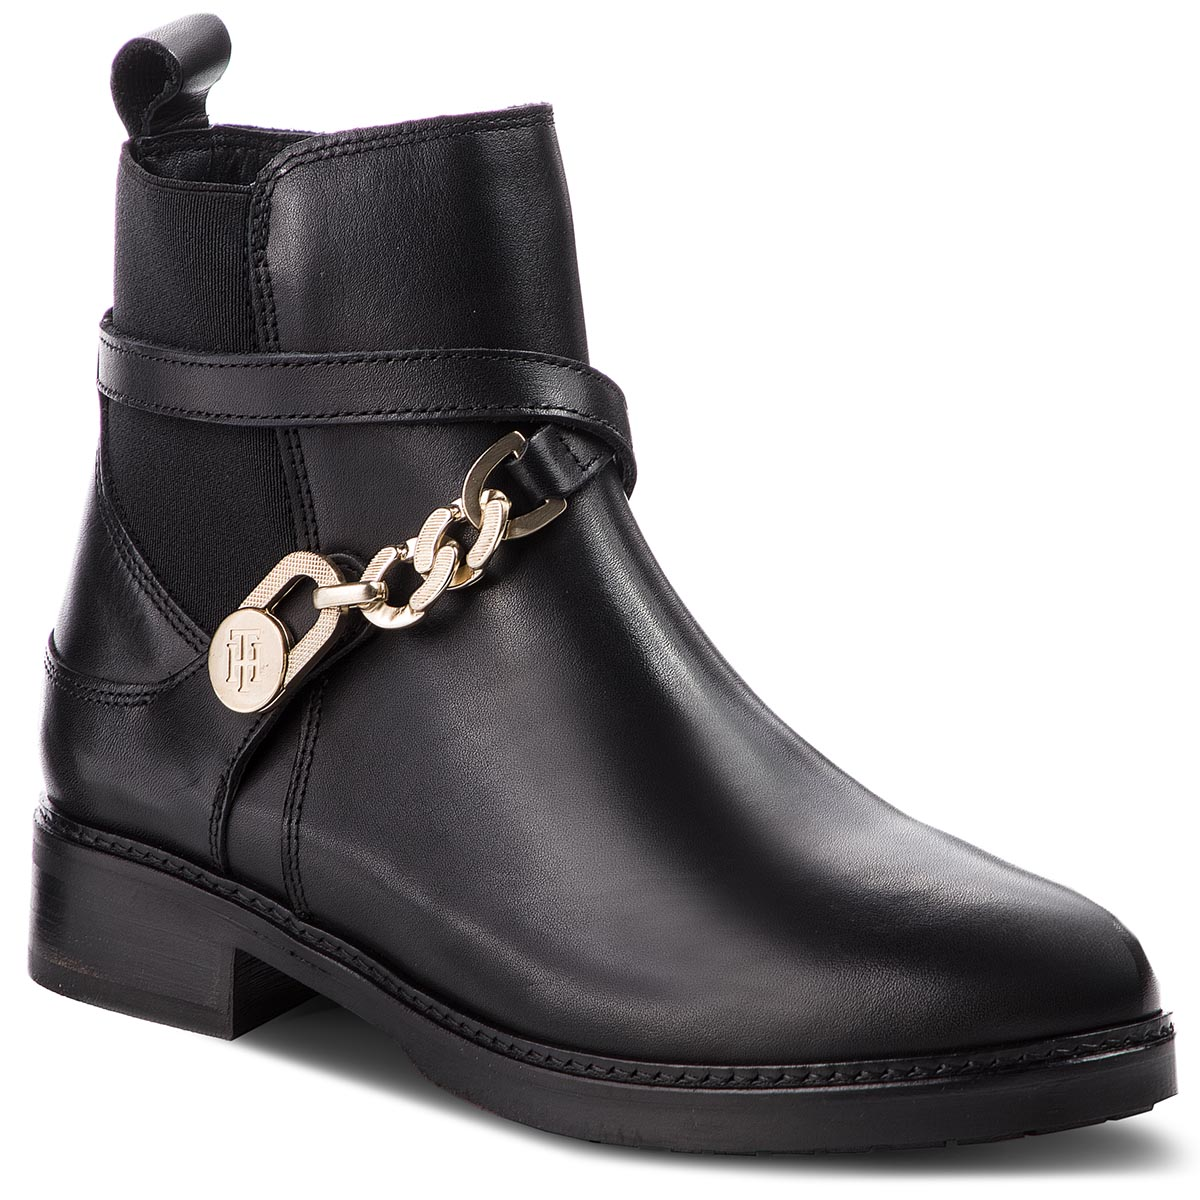 Sztyblety TOMMY HILFIGER - Th Chain Bootie Leat FW0FW03311 Black 990